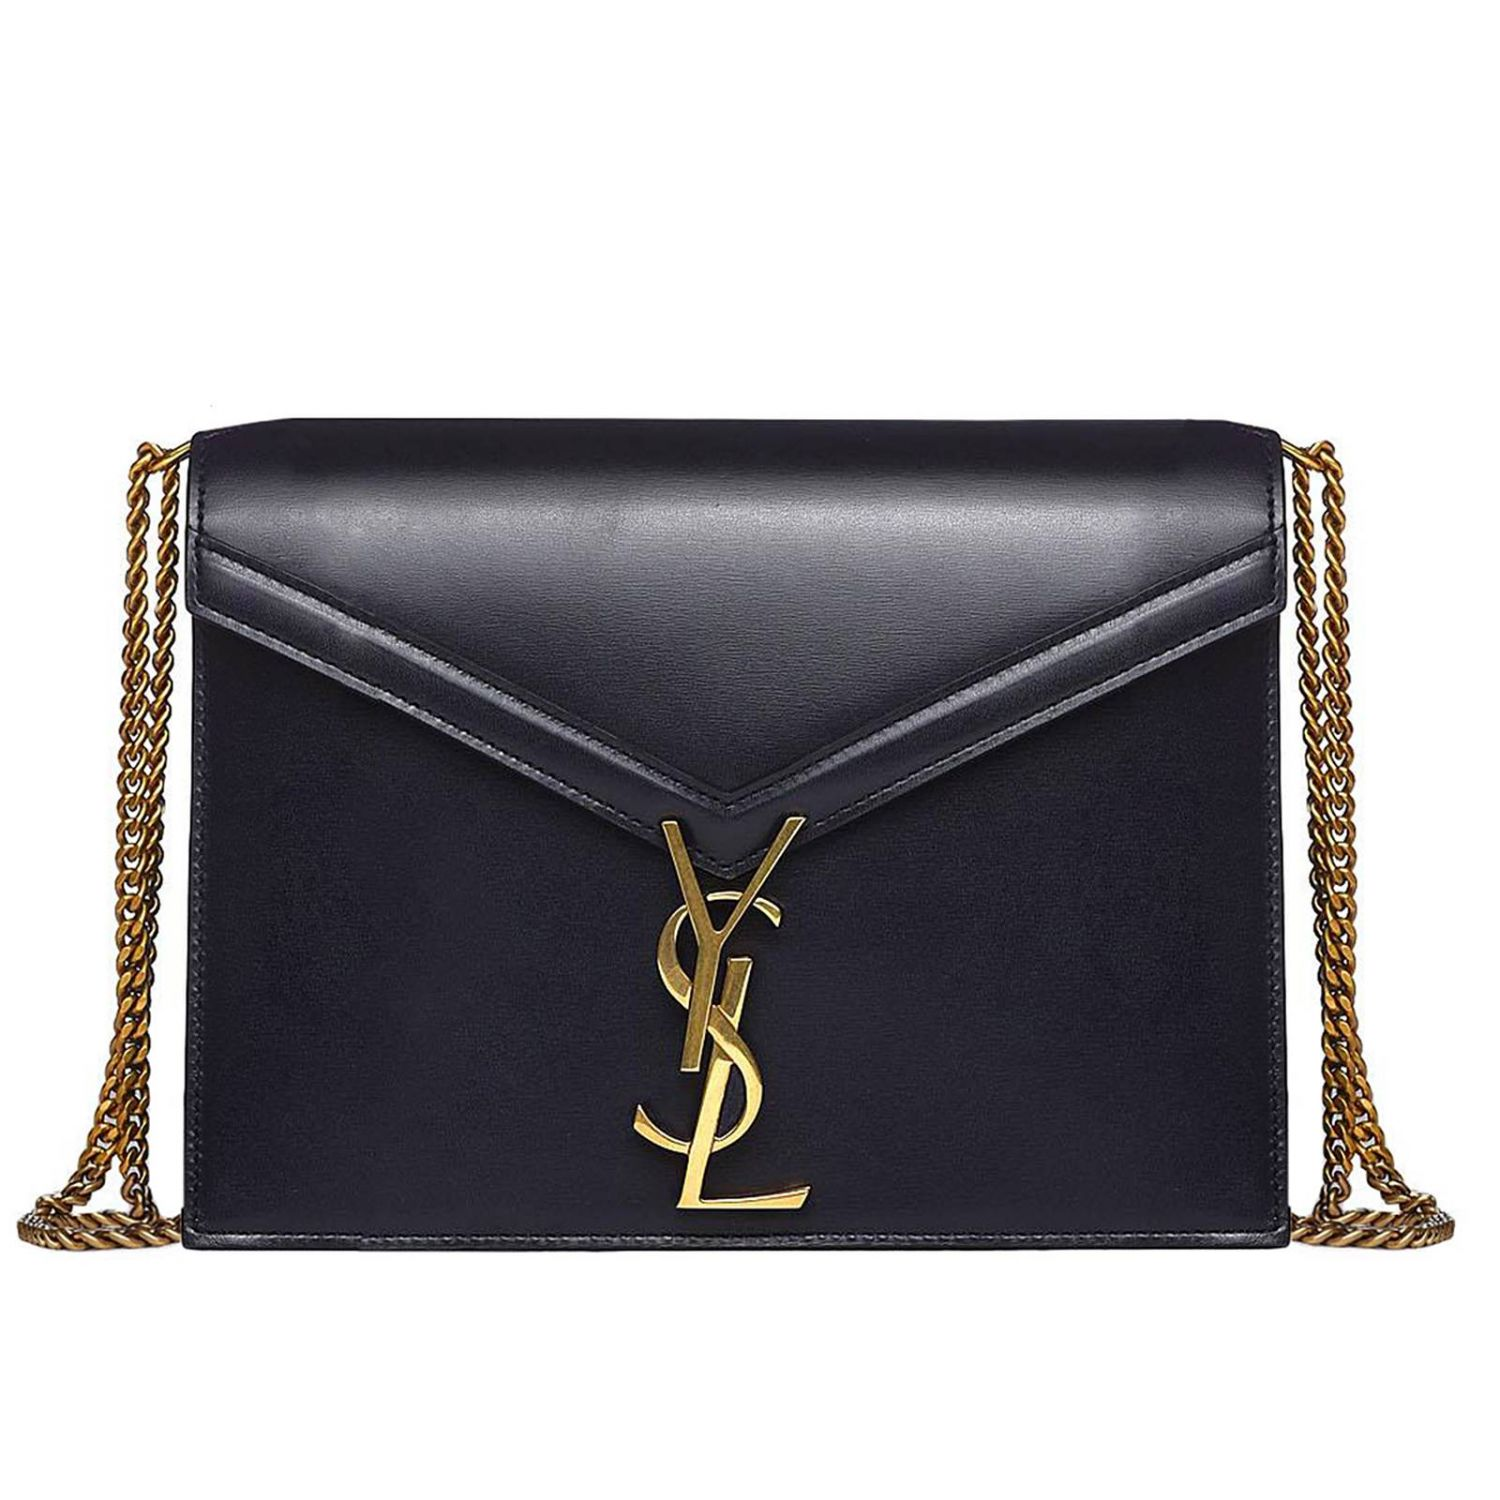 Handbag Handbag Women Saint Laurent 8498396